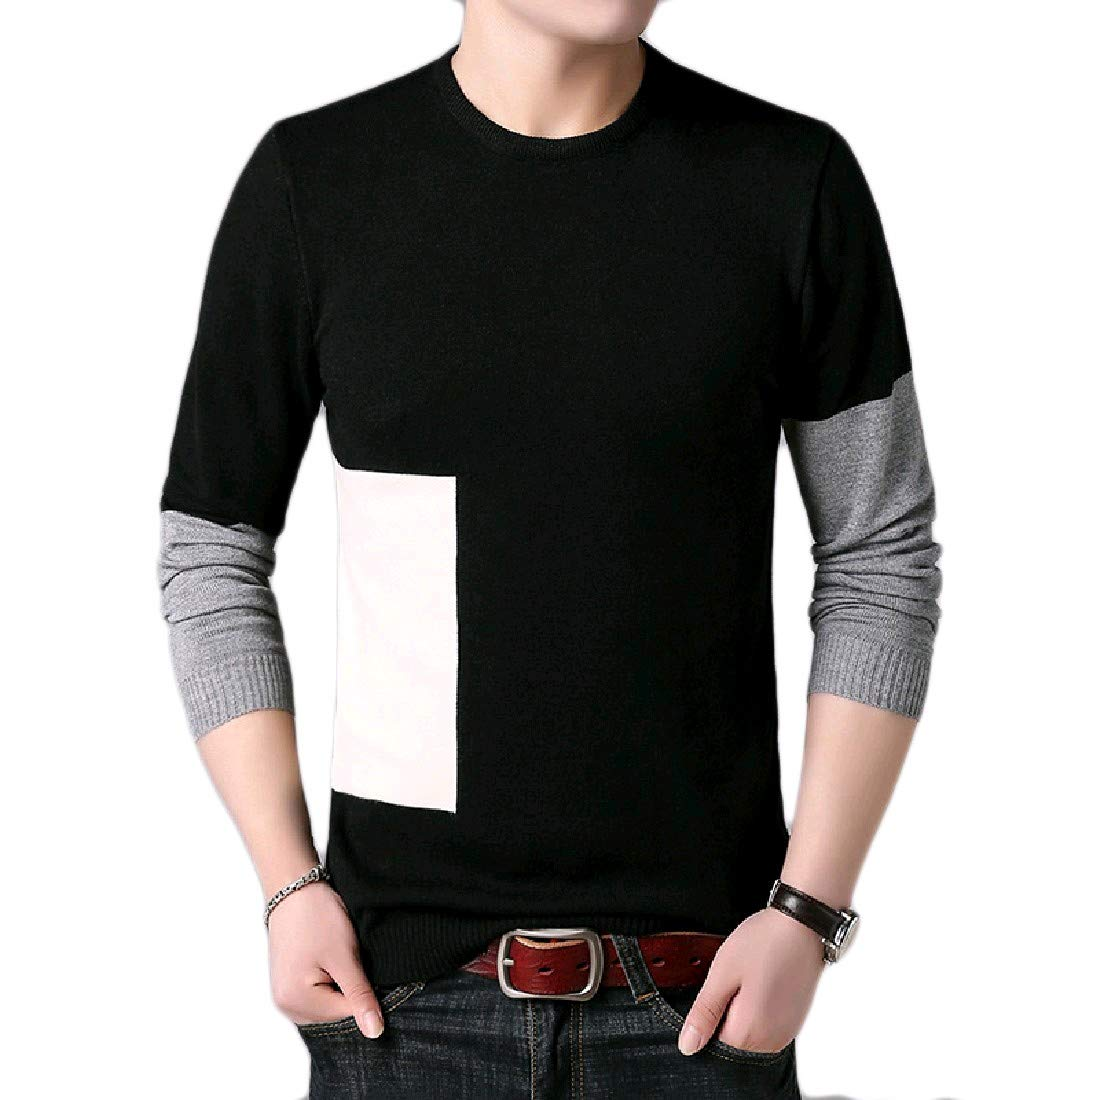 YUNY Mens Crewneck Leisure Business Oversize Pullovers Sweater 15 M